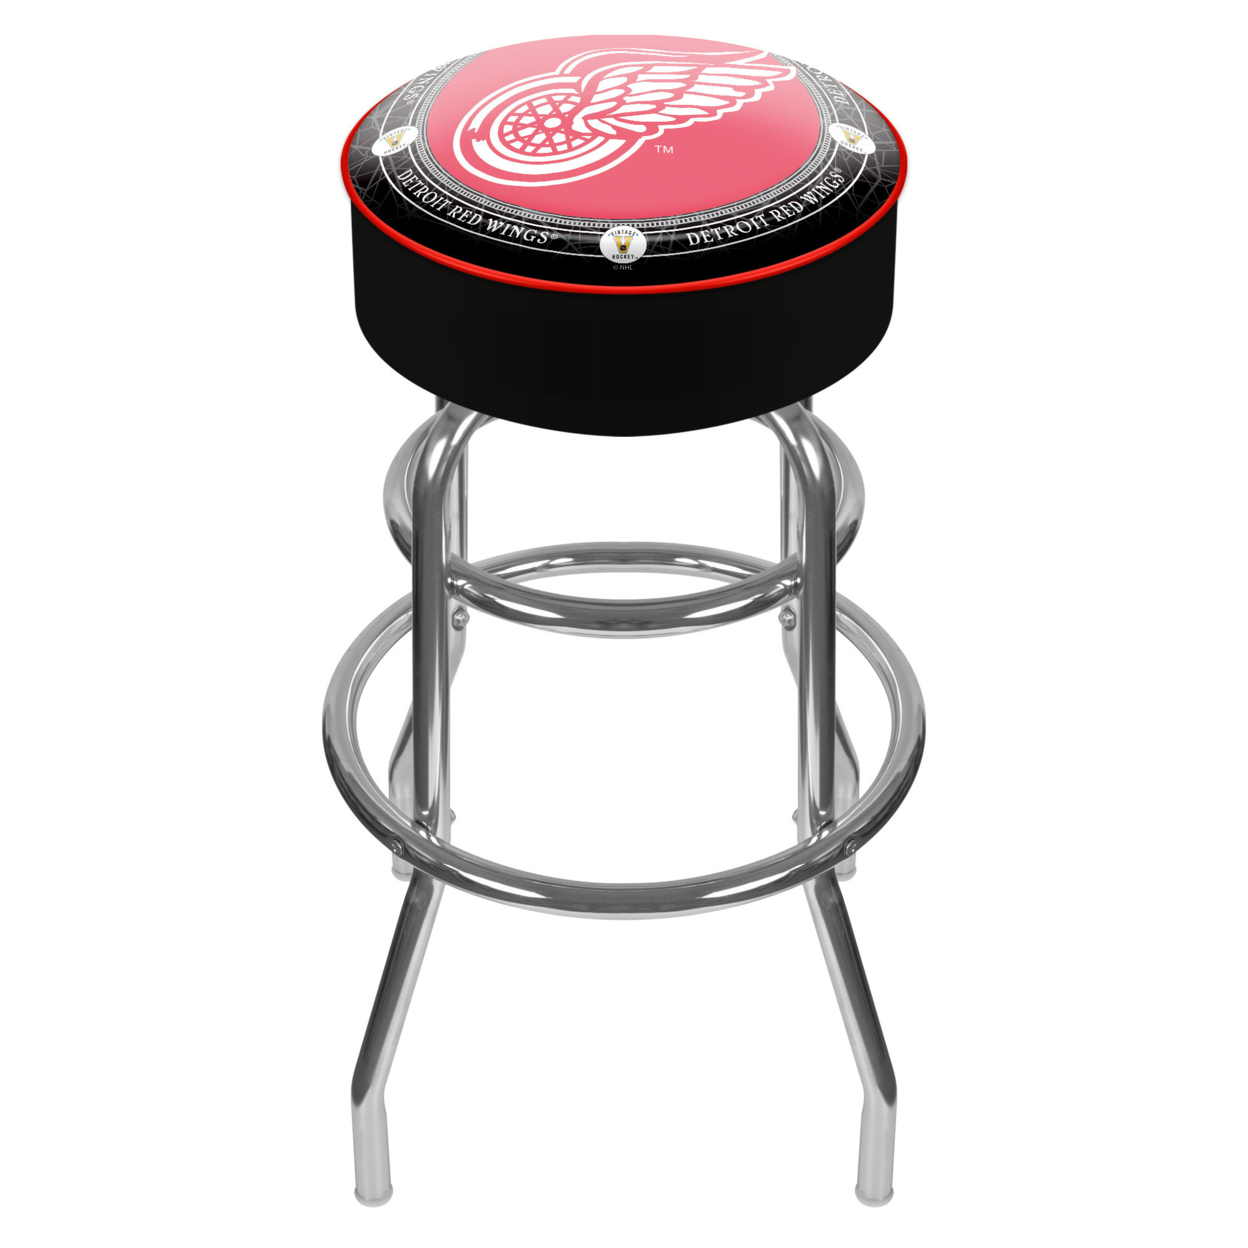 Throwback Detroit Redwings Padded Swivel Bar Stool 30 Inches High eurofit detroit